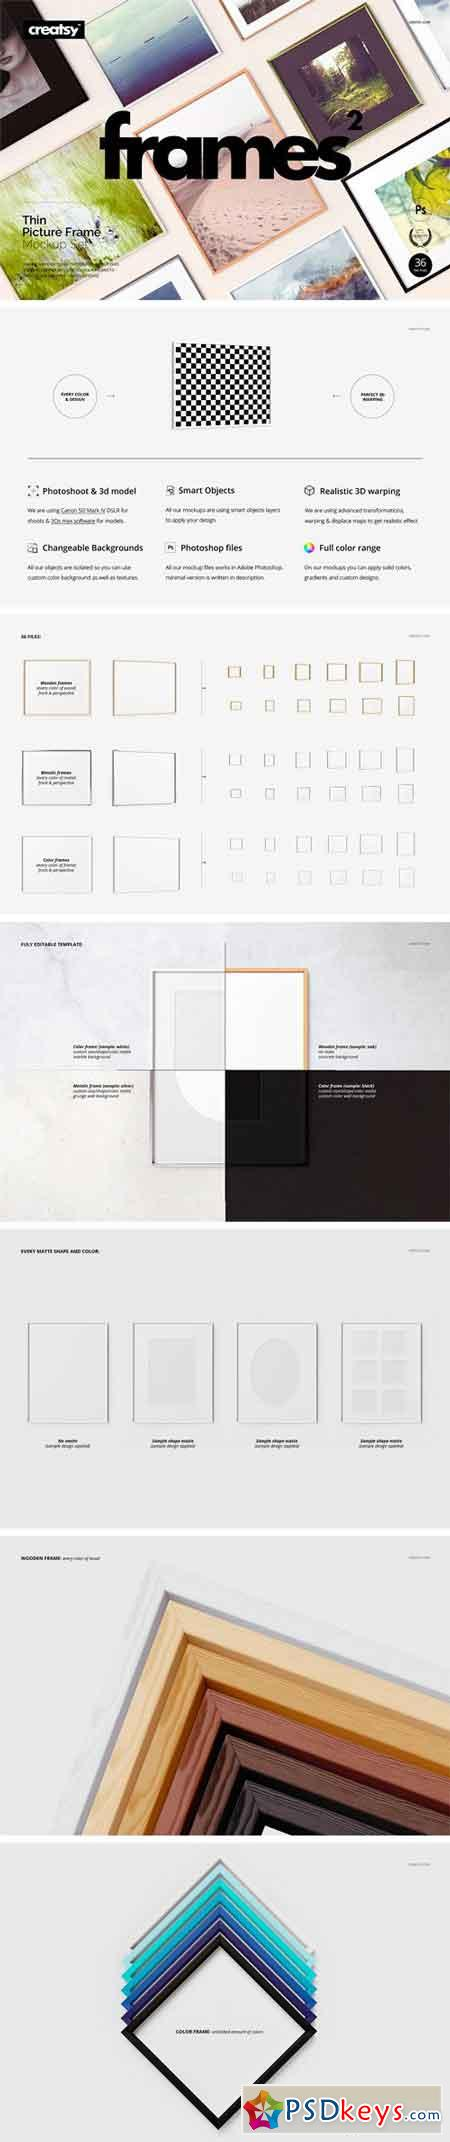 Picture Thin Frame Mockup Set 2371146